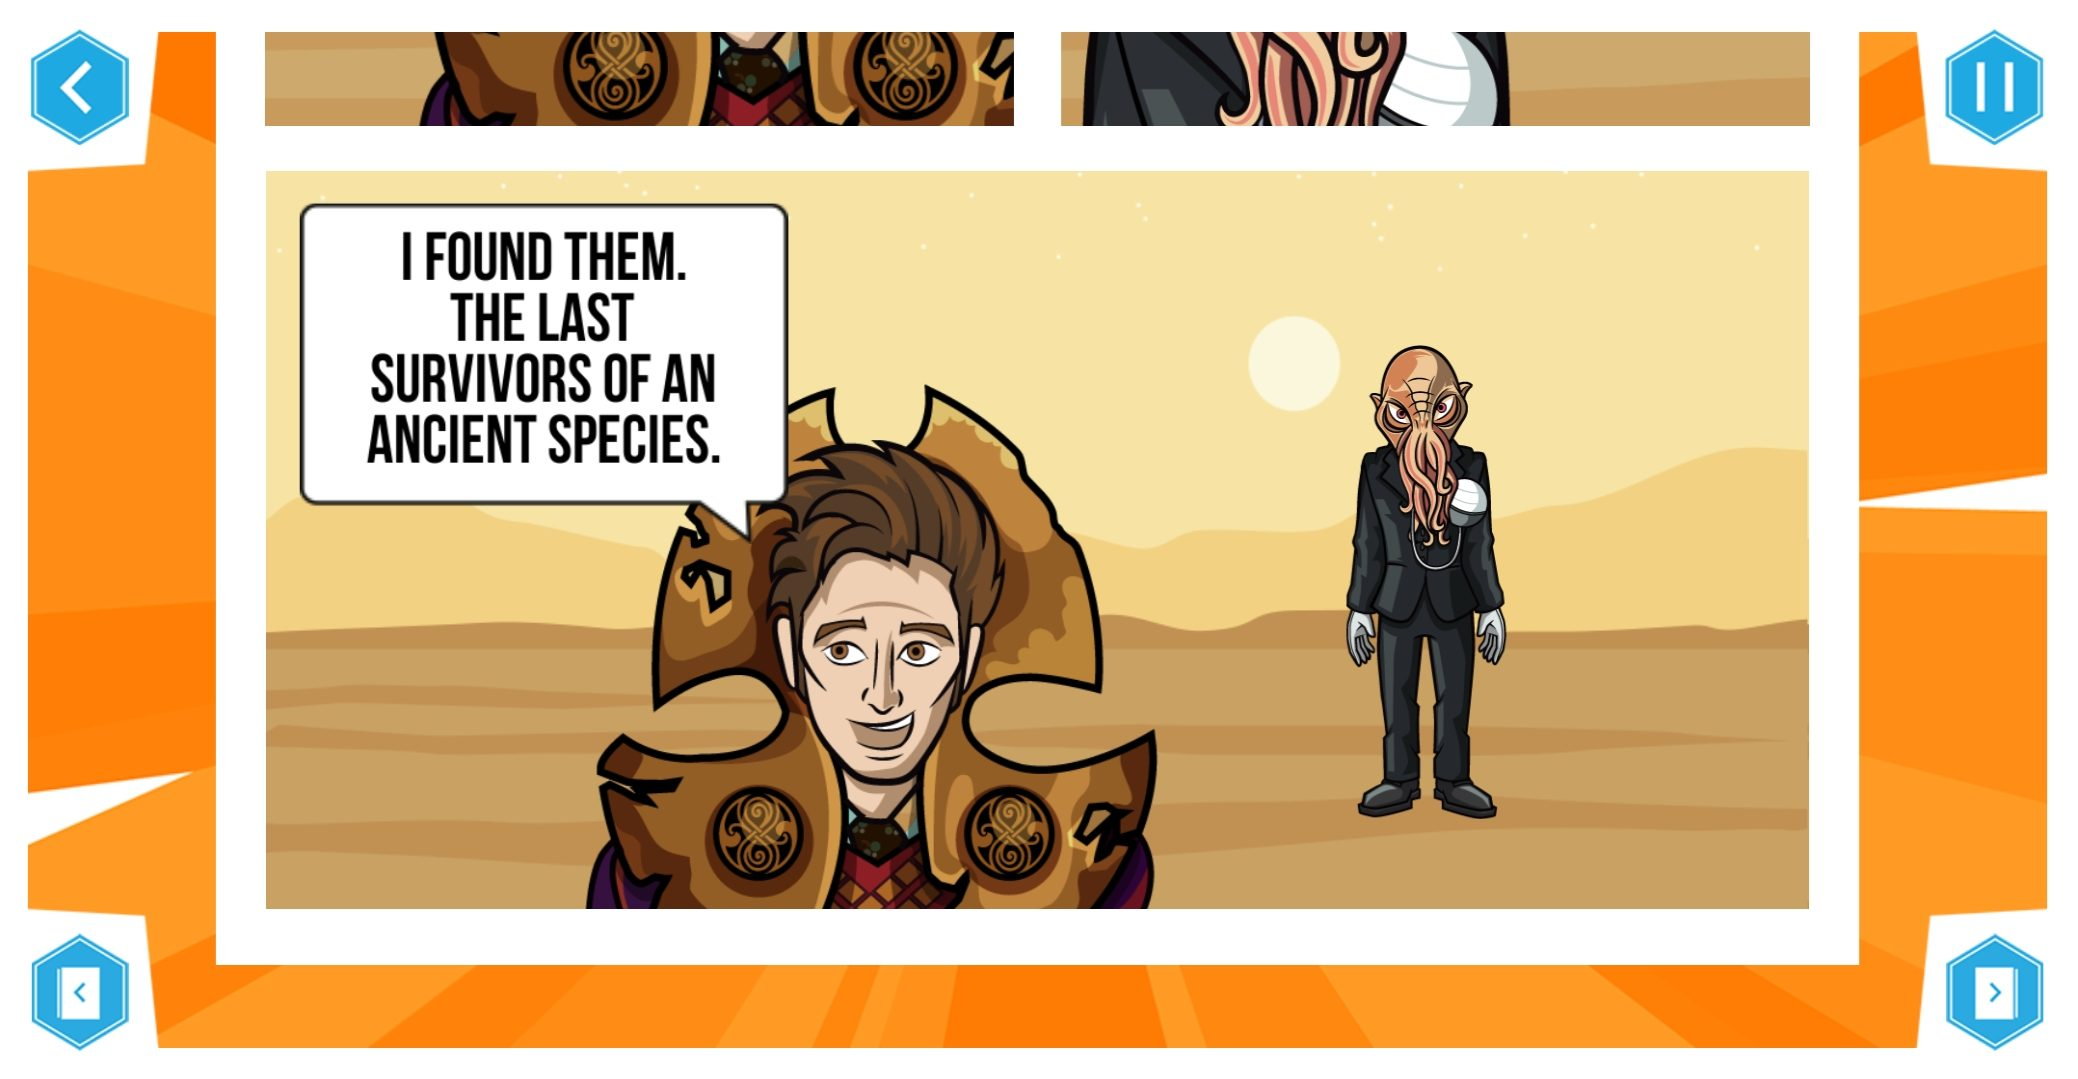 Time Lord Victorious: Tales of the Dark Times consists of five mini-comics made in the Comic Creator App (c) BBC Studios